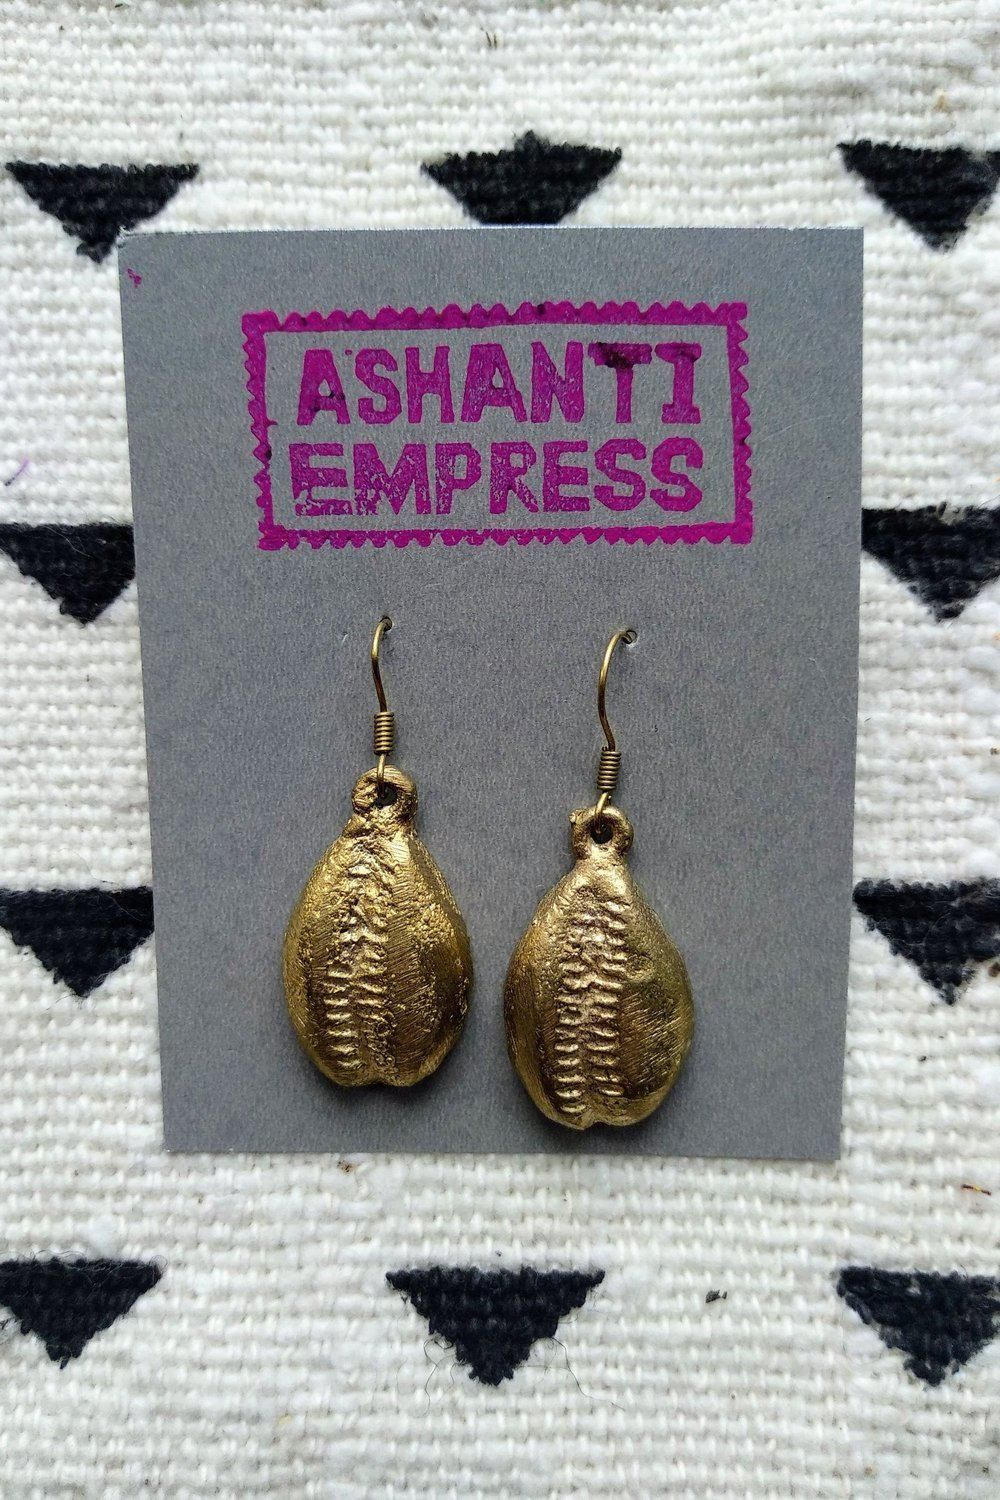 Cowrie Shell Brass Earrings-accessories-Ashanti Empress